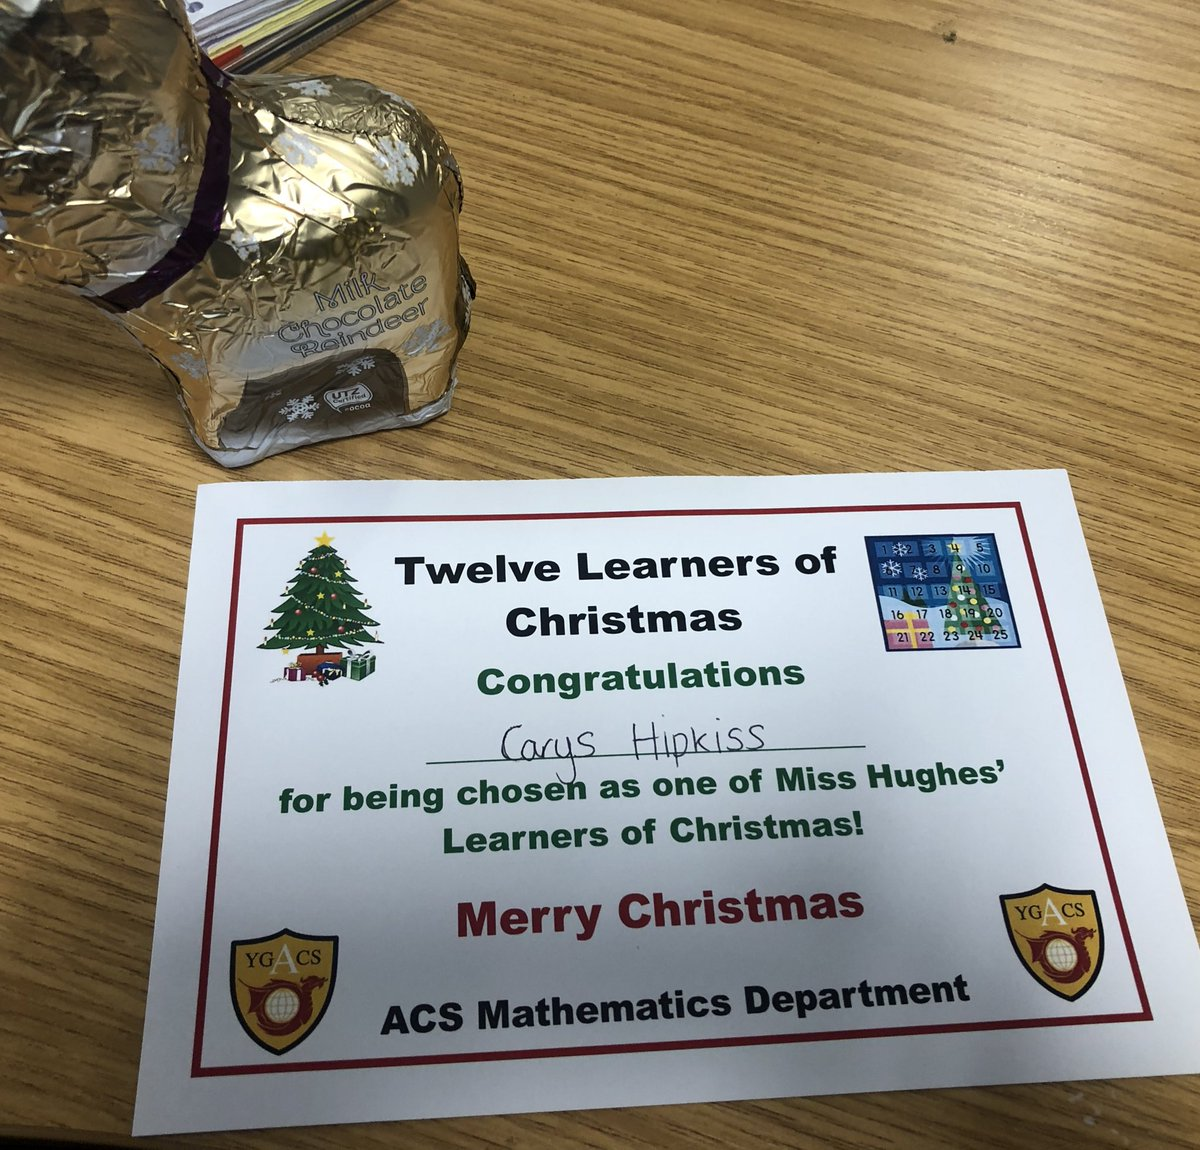 Congratulations to Carys in Year 9 for being chosen as my third Learner of Christmas Carys has put lots of effort into finding percentages over the last few lessons #Mathematics #HardWorkPaysOff